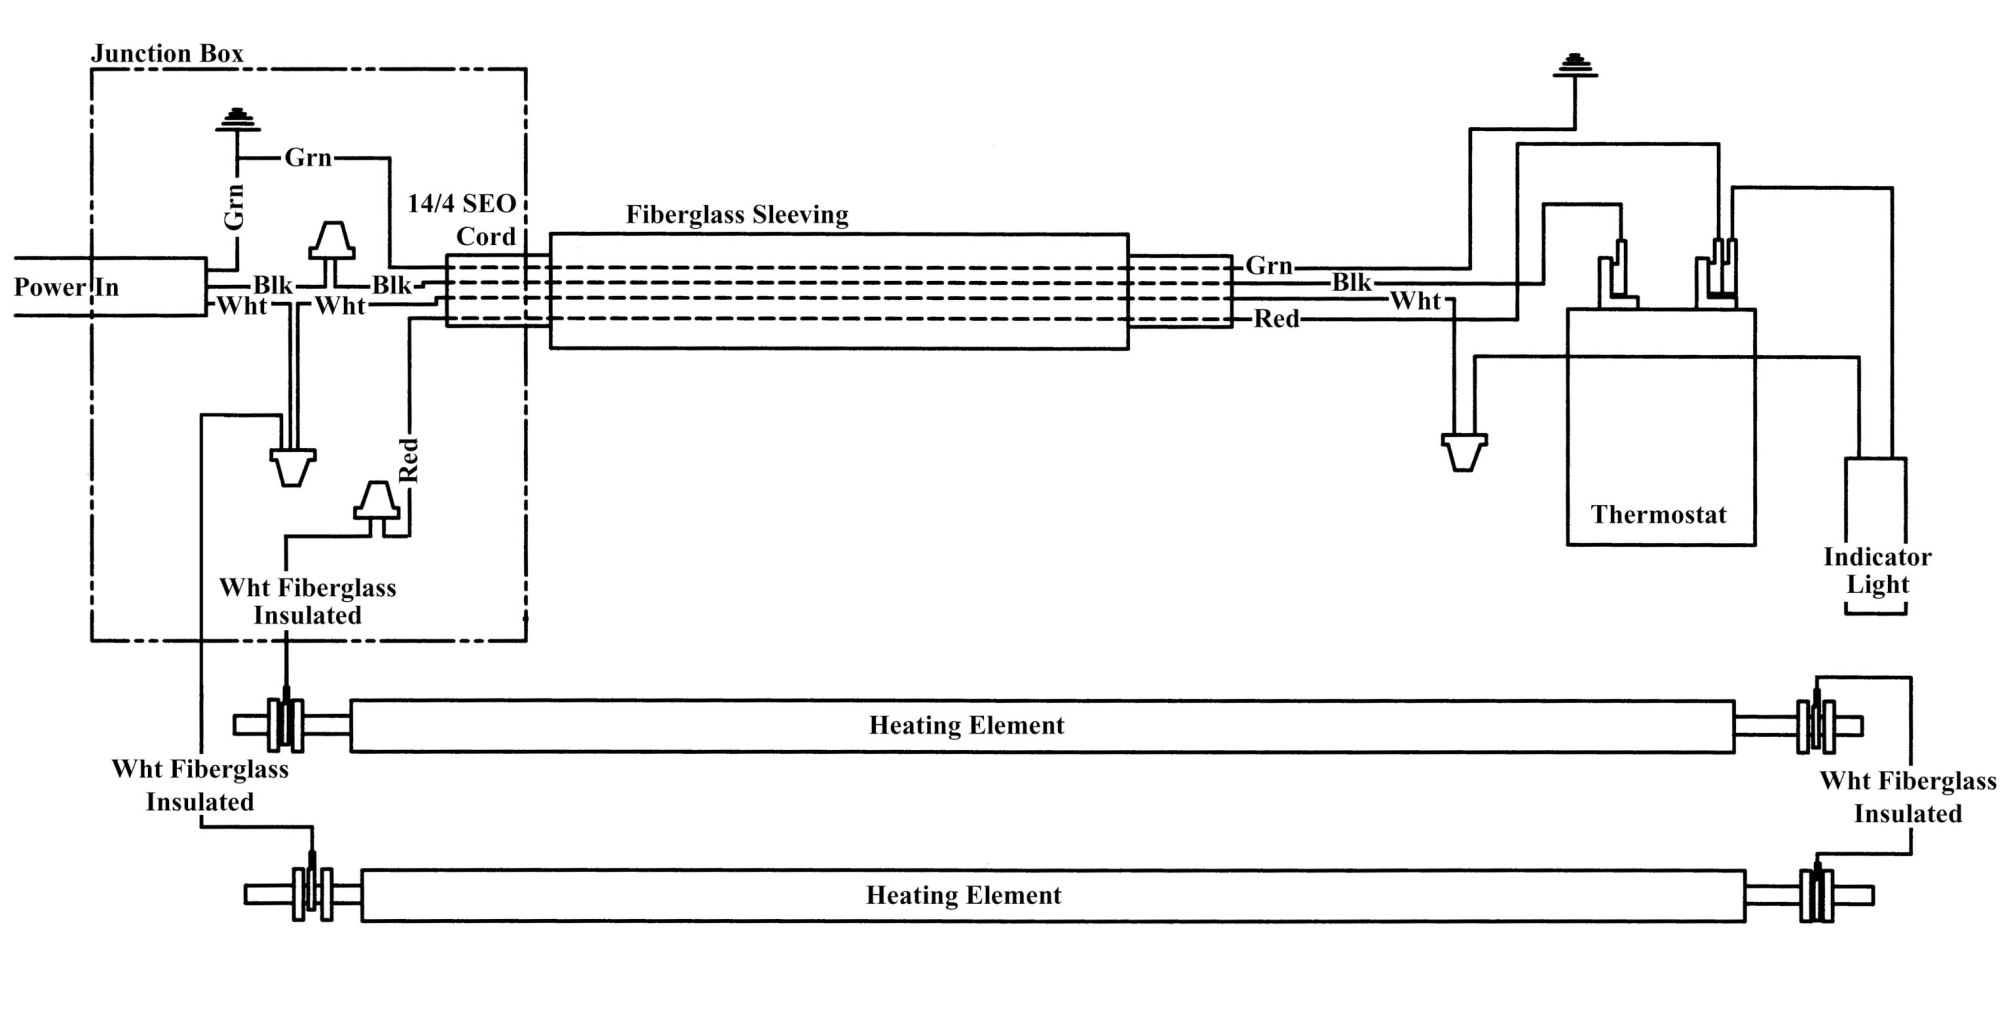 hight resolution of 240v 3 phase transformer wiring diagram free picture simple guide 3 wire 240v wiring 480v lighting